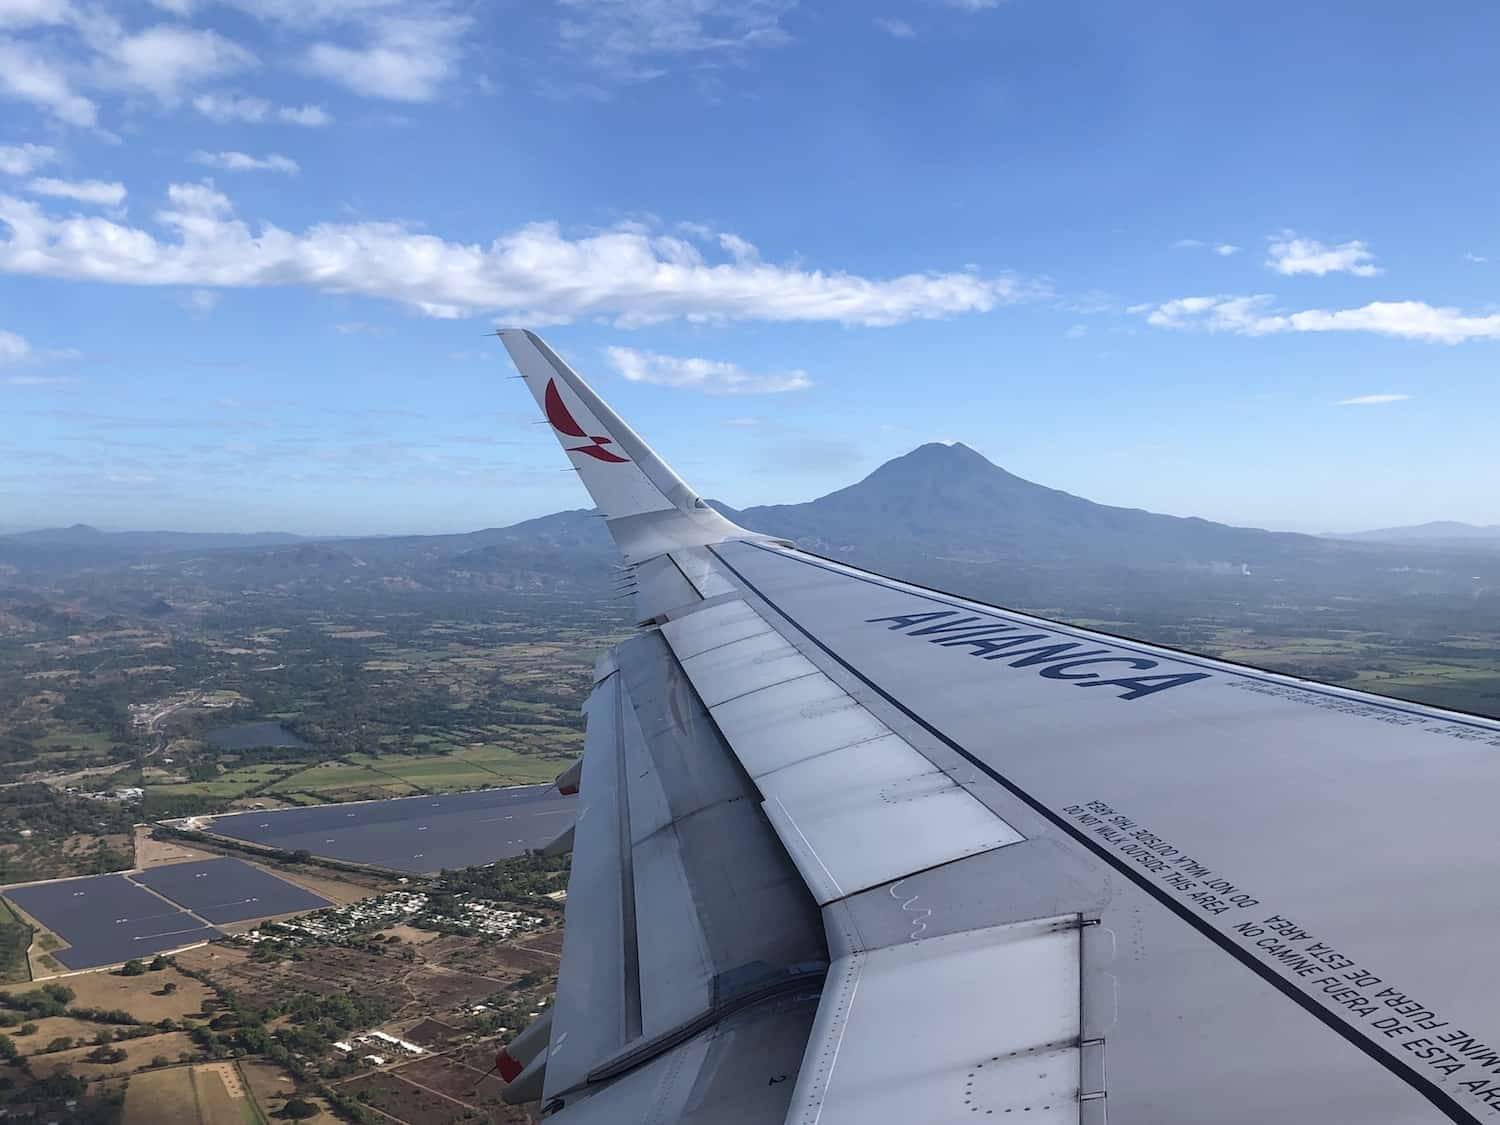 Departing El Salvador on Avianca